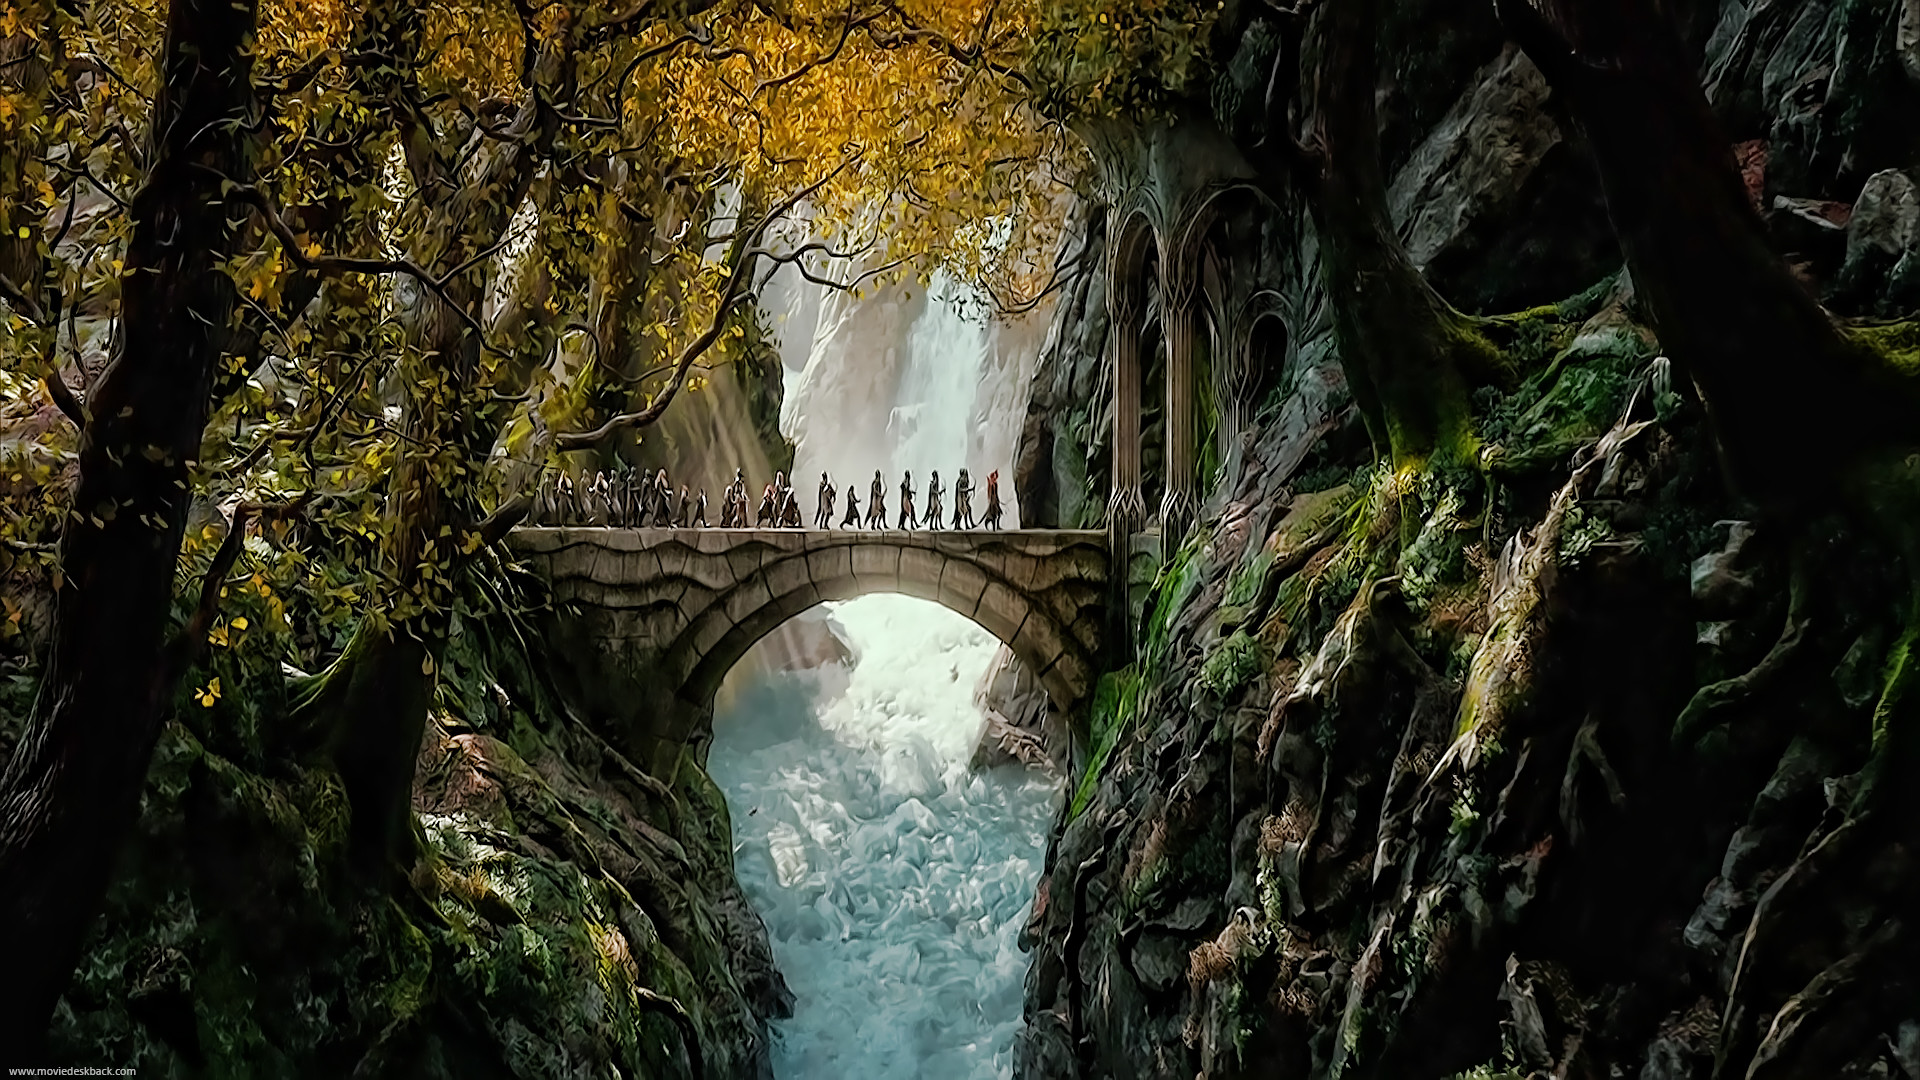 The Hobbit The Battle of The Five Armies Angry Smaug HD Wallpaper | The  Hobbit | Pinterest | Hobbit, Hd wallpaper and Army